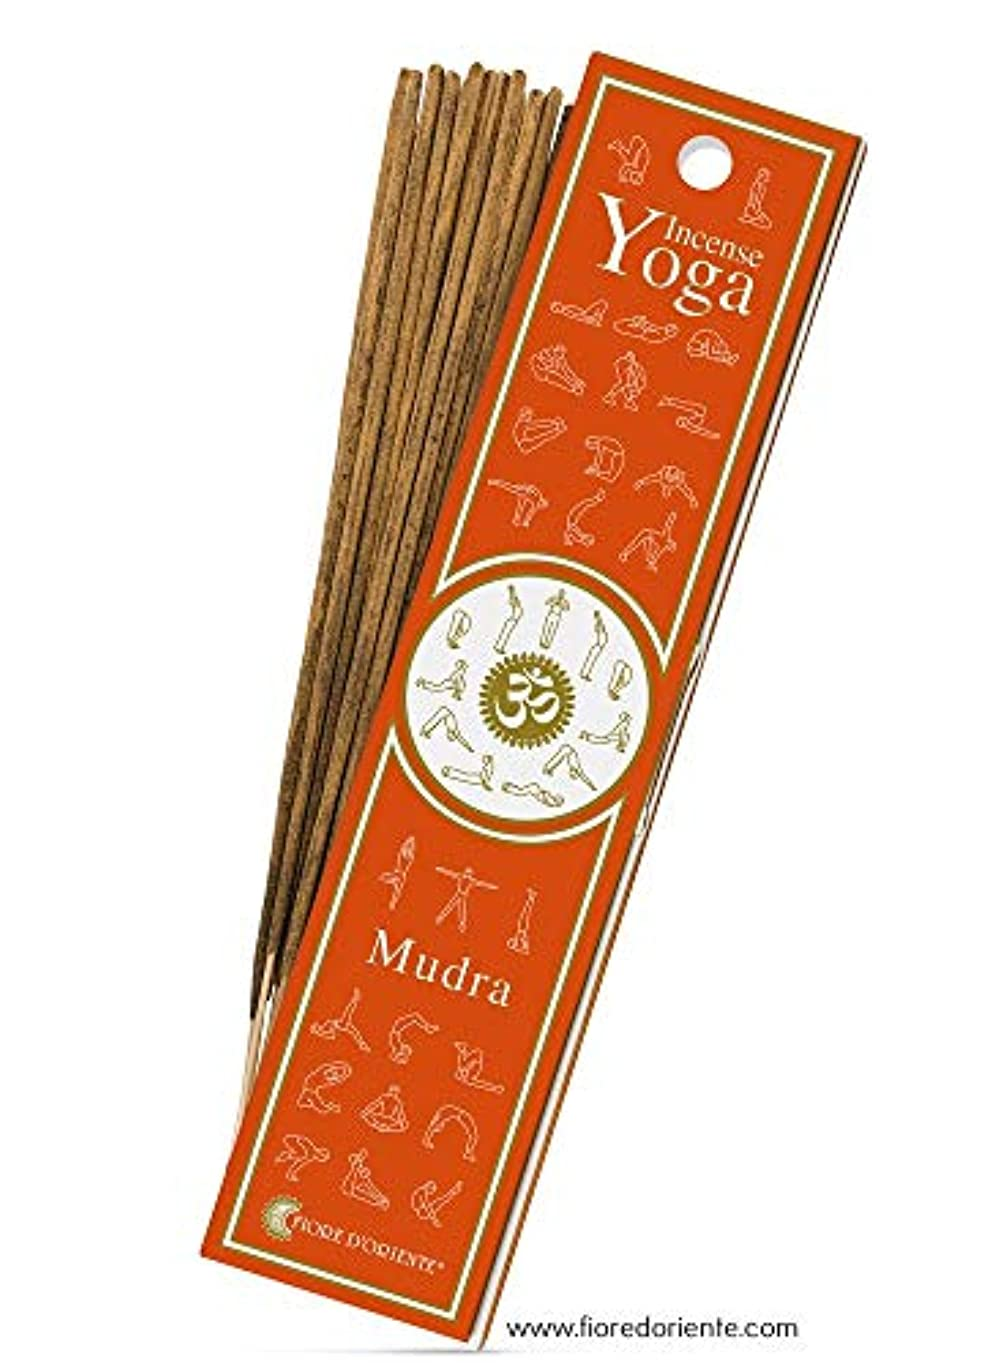 サーマル被害者胸印相 – ヨガ – Natural Incense Sticks 10 PZS – Natural Incense会社